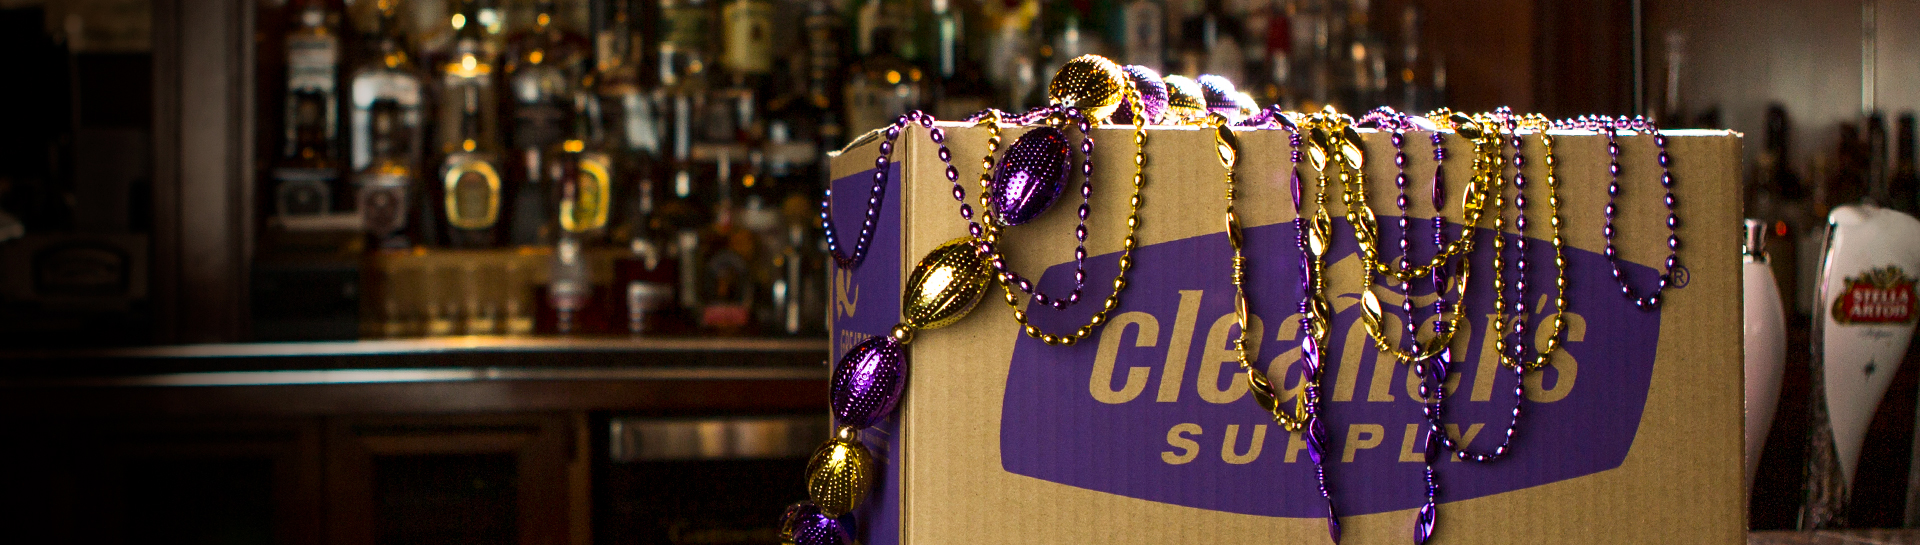 Cleaner's Supply New Orleans Mardi Gras Beads Shipping Box